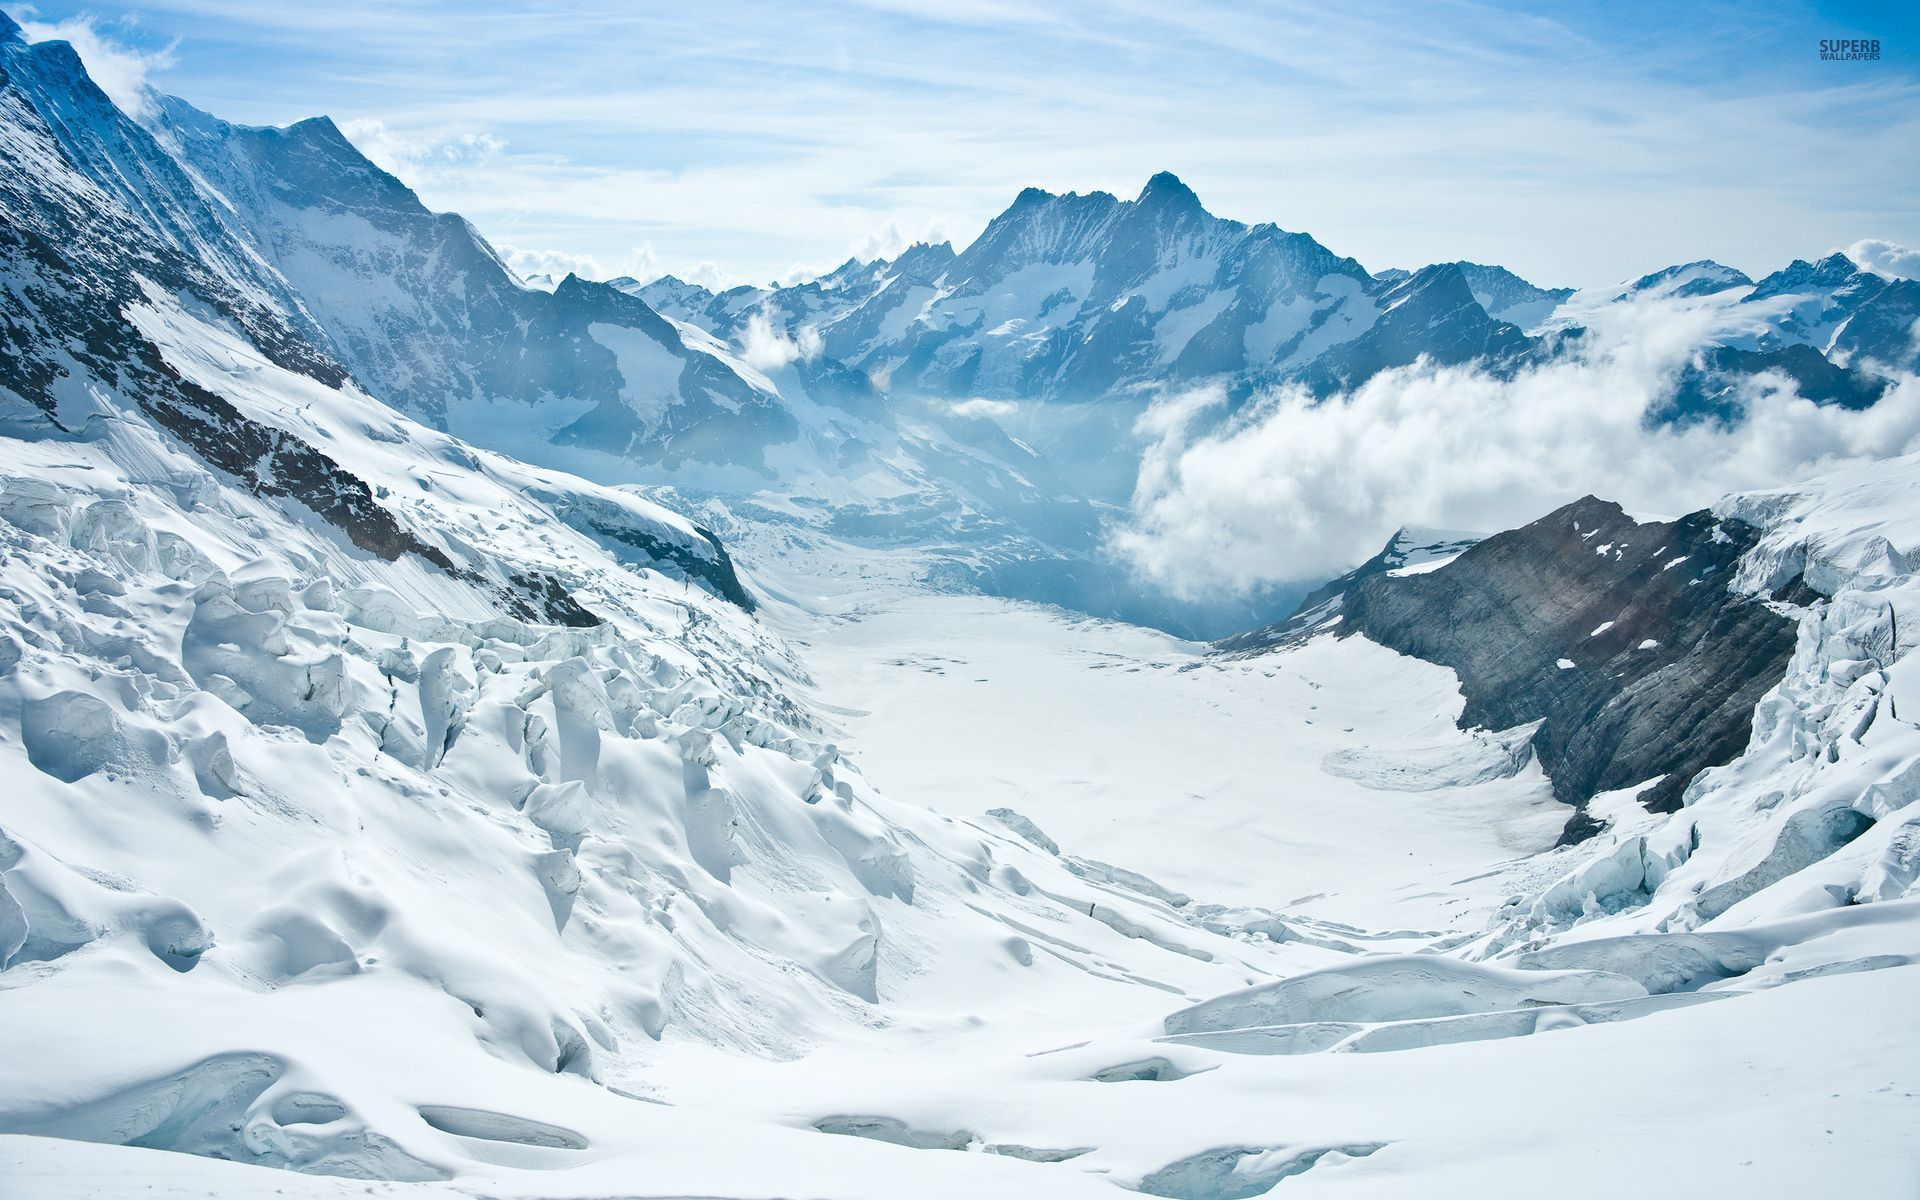 Snowy Background With Mountain: Wonderful Snow Mountains Foggy Wallpapers